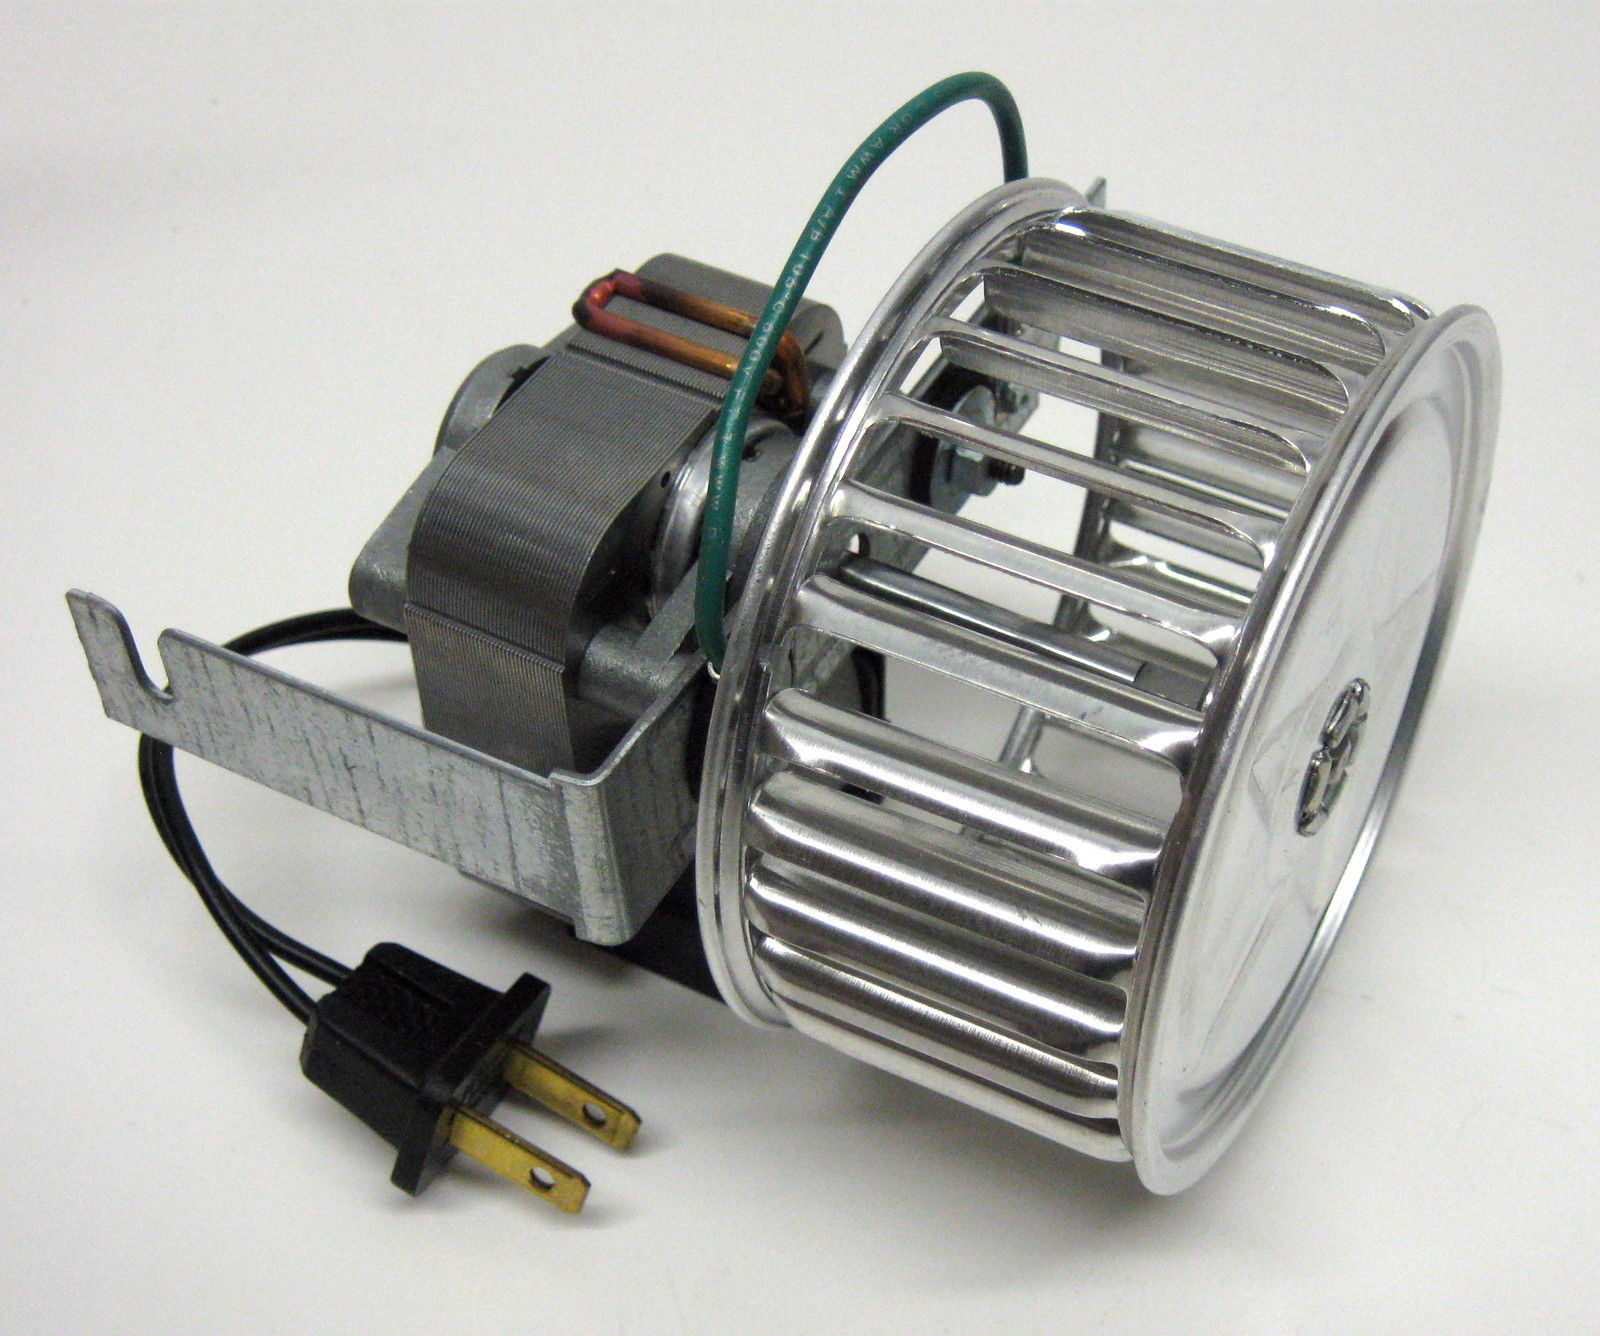 82229000 genuine nutone broan oem vent bath fan motor for model